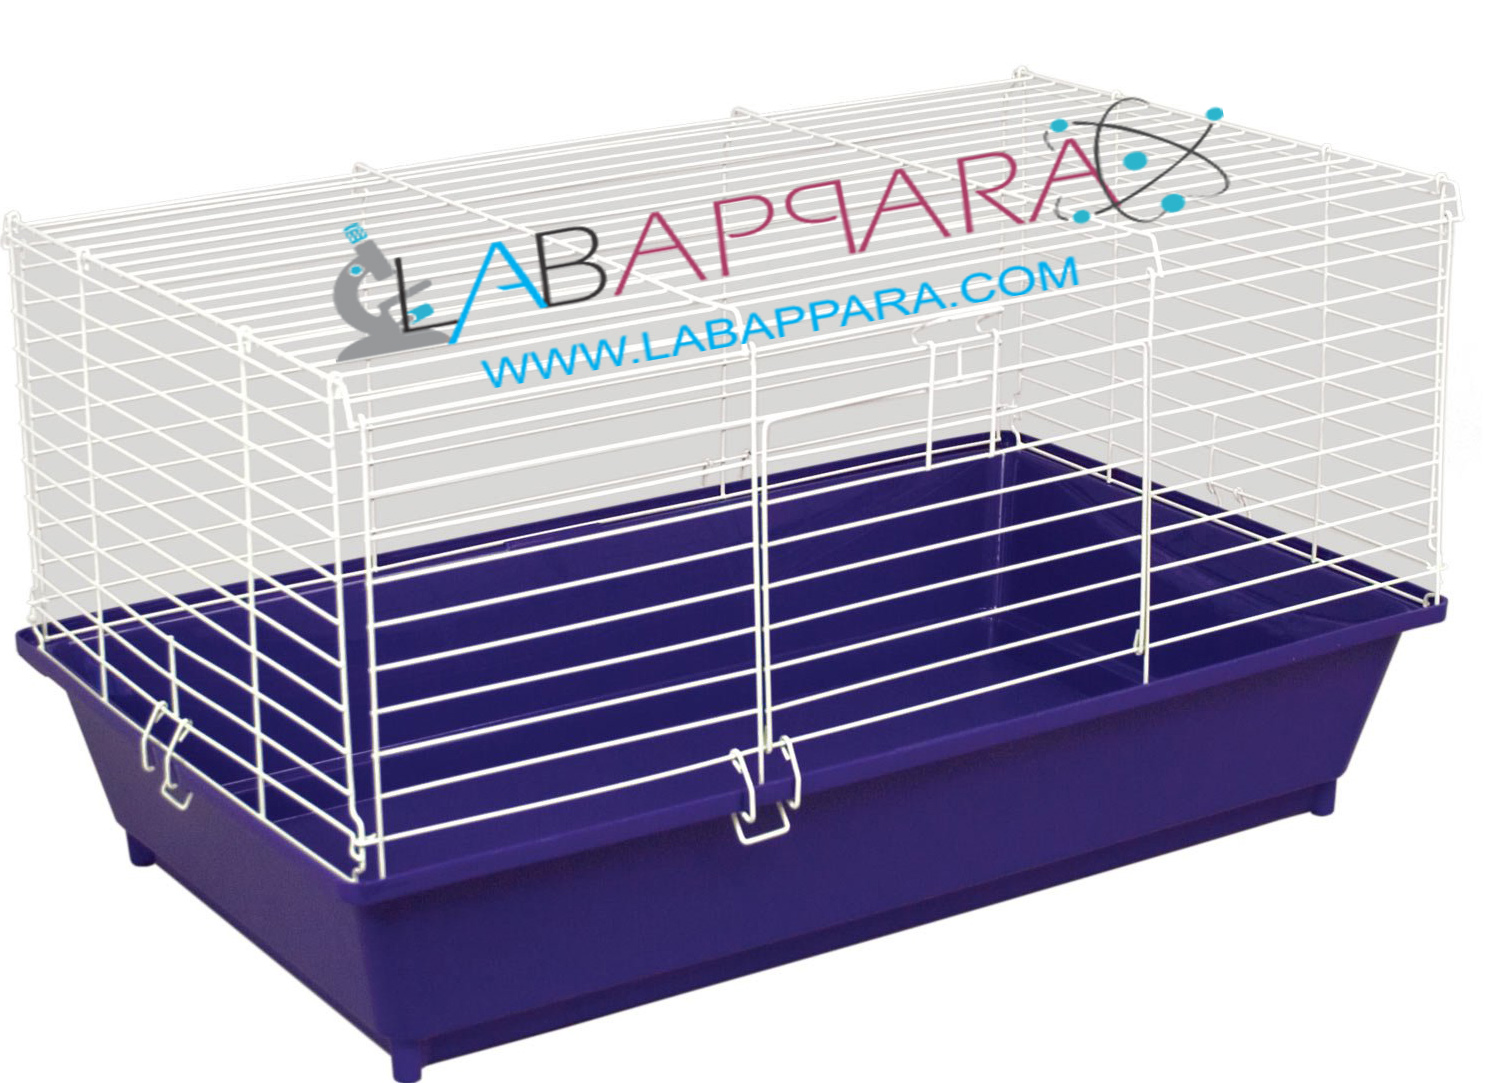 Small Animal Cage, manufacturers, supplier, exporter, distributors, ambala, india